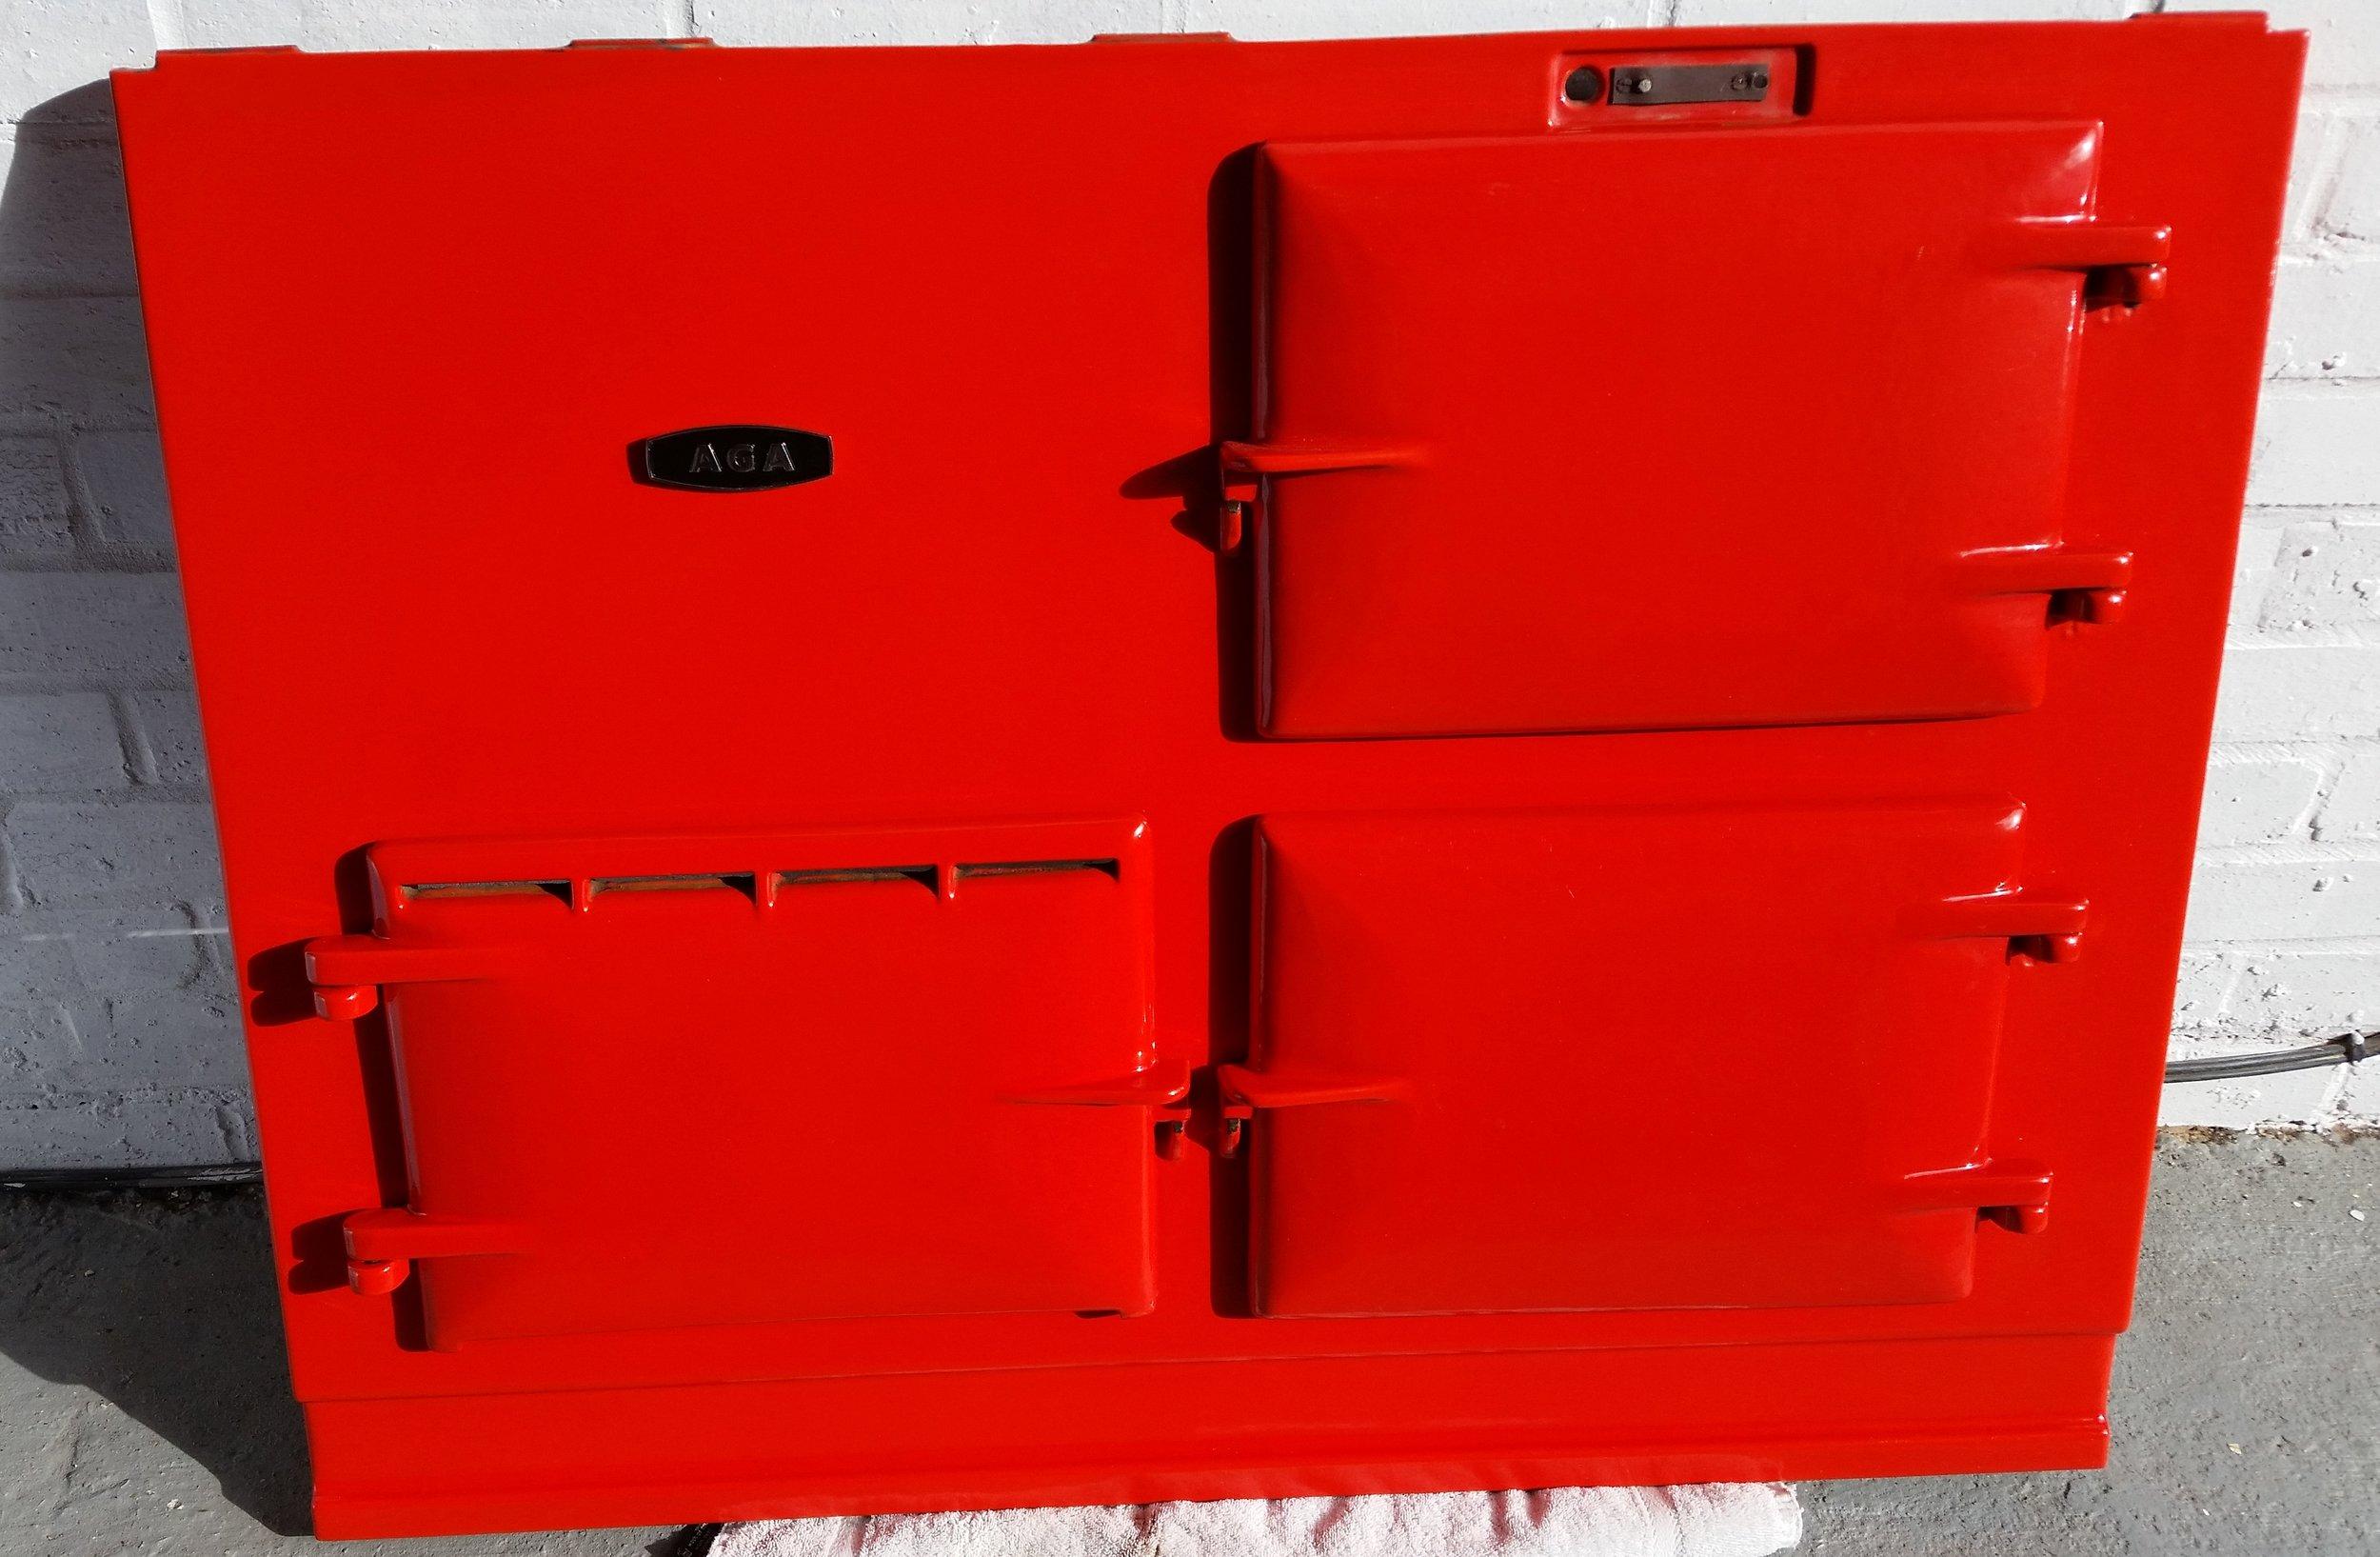 2 oven red Post 74 - Very bright red - good condition£3800